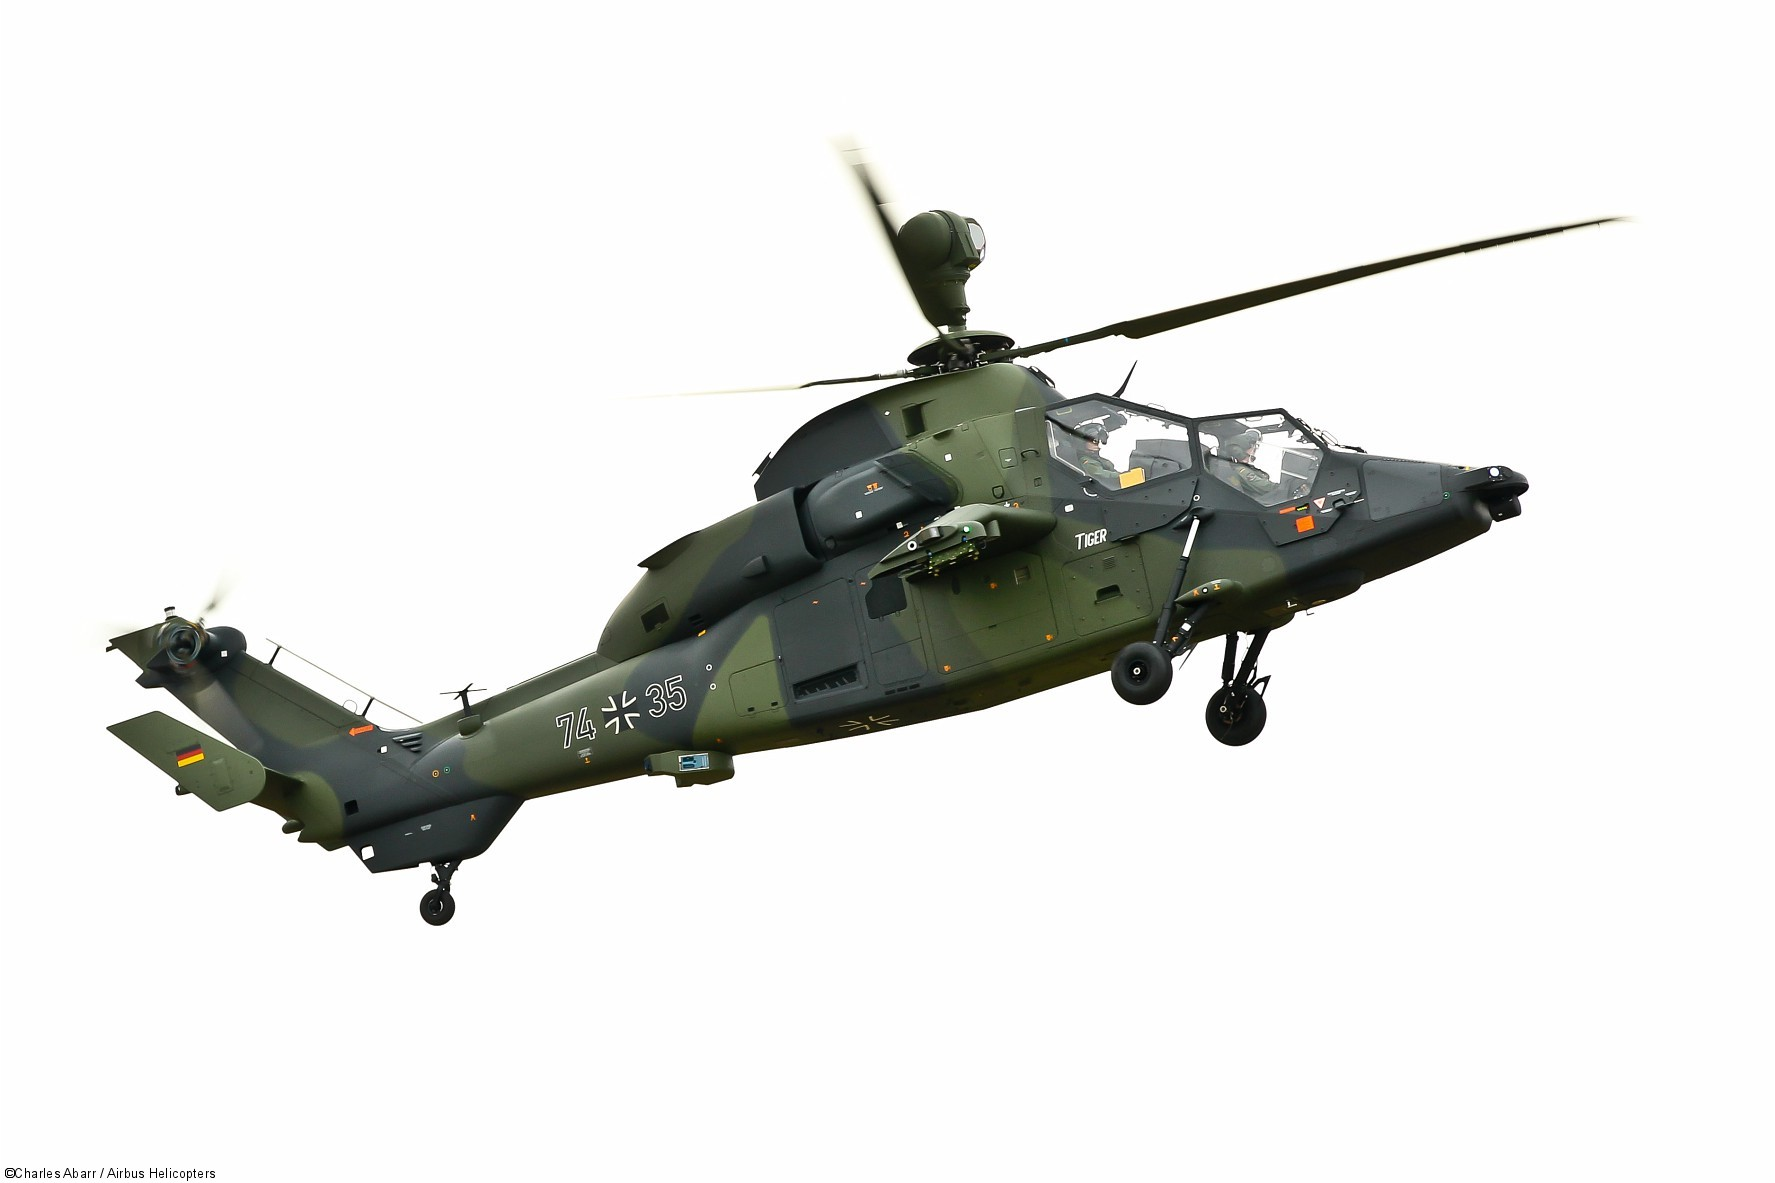 military helicopters the tiger specialized helicopter airbus